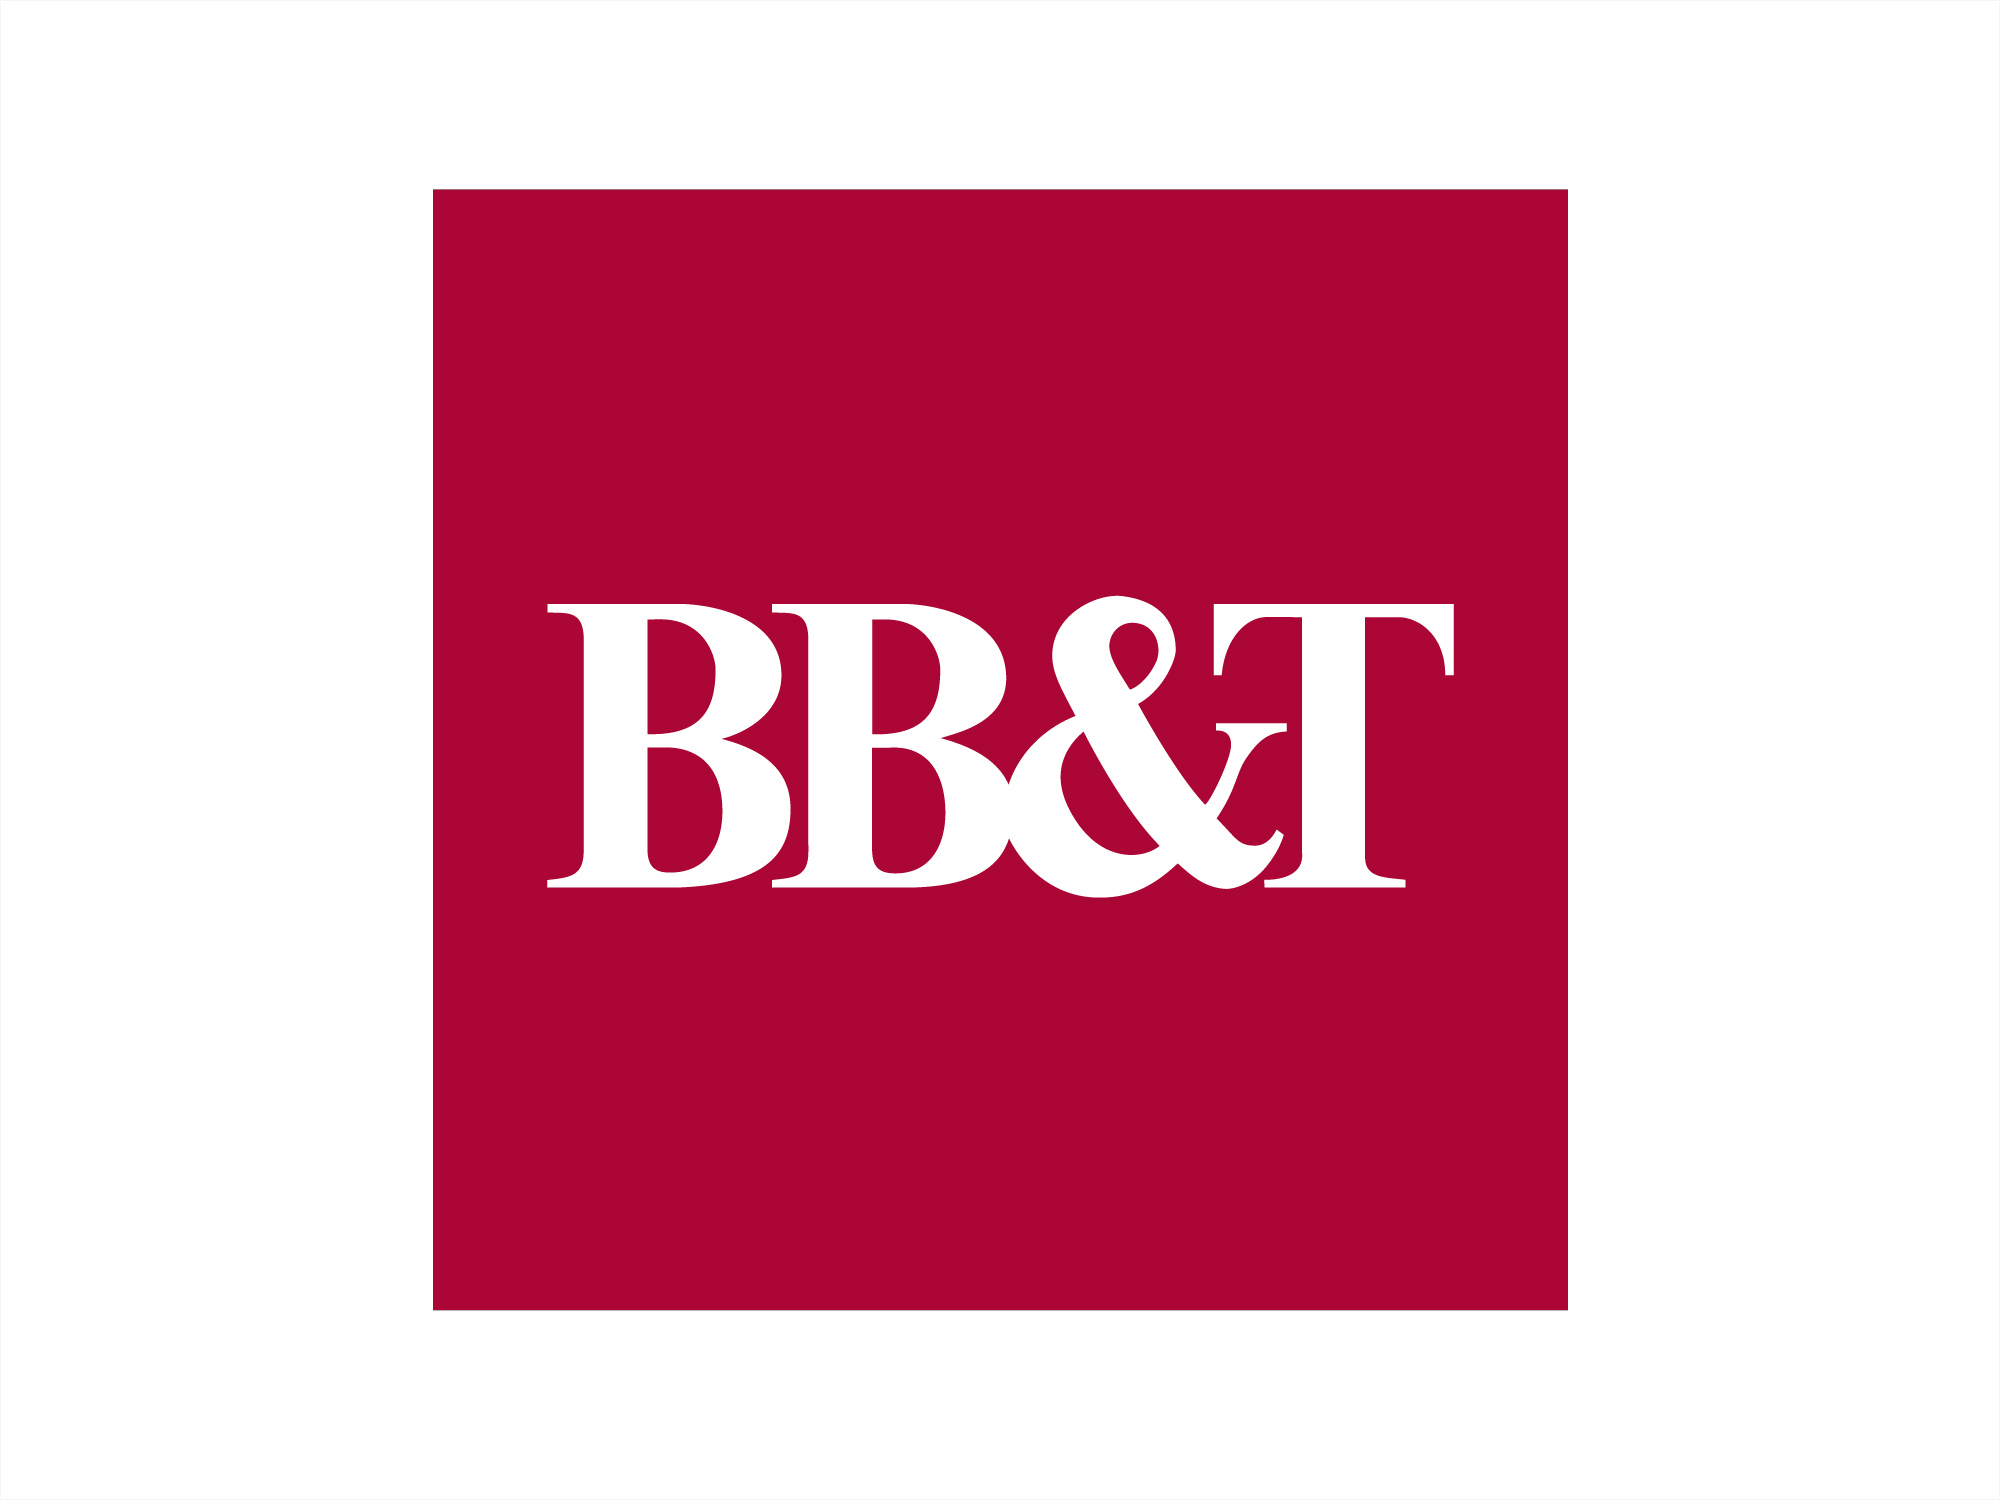 BB&T reports outages in ATM services, digital banking